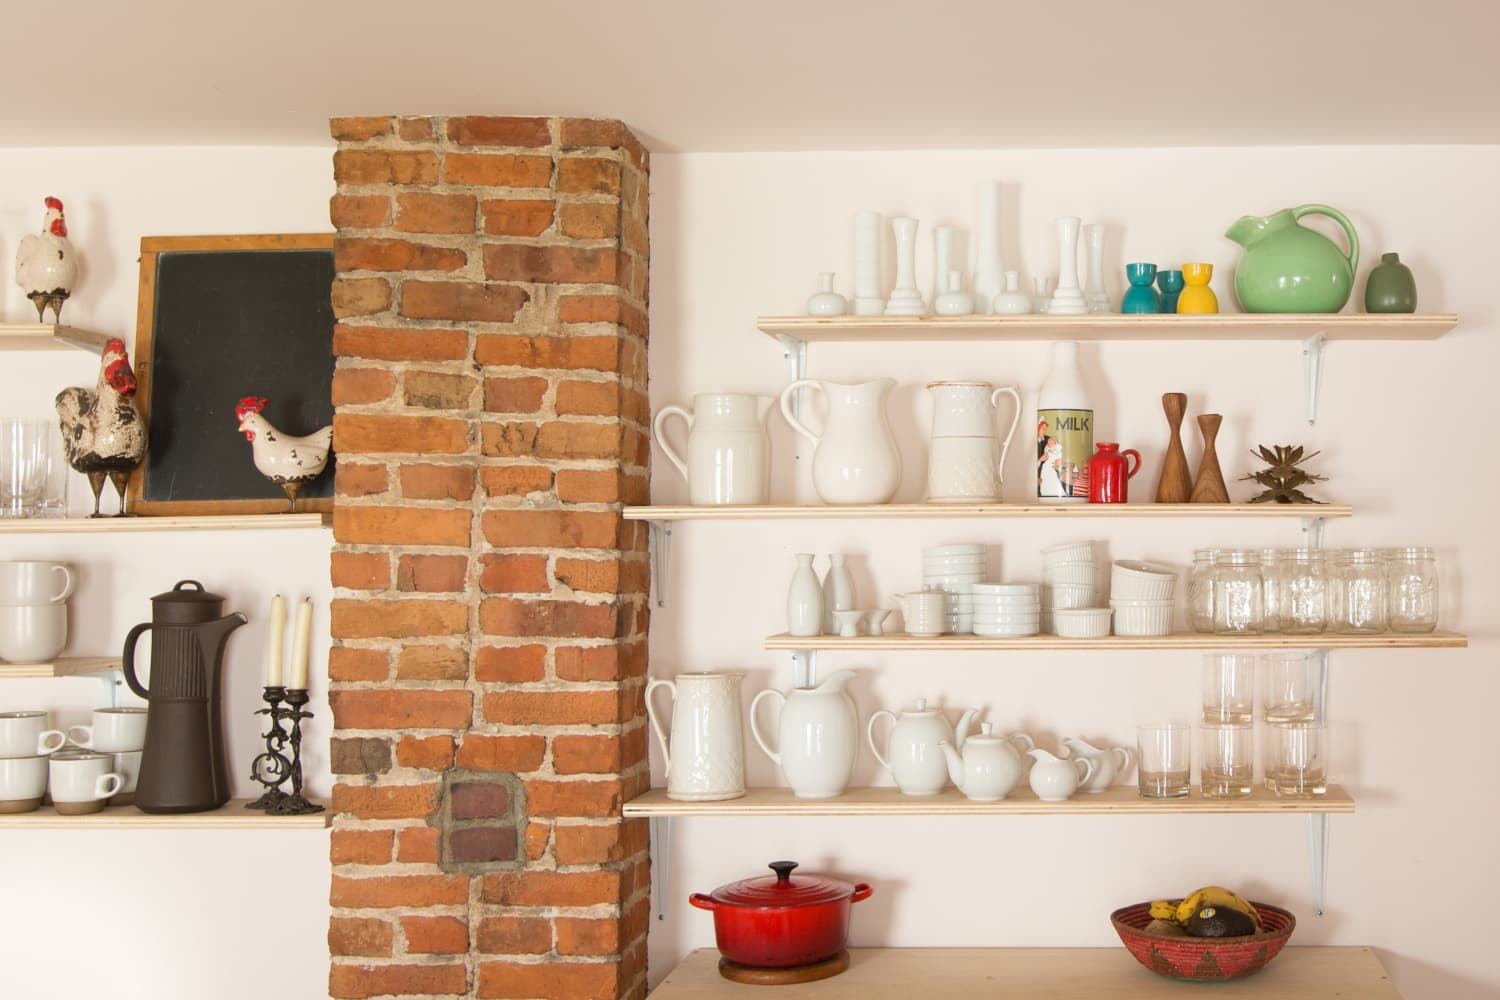 20 New Ways to Use Shelf Brackets You've Never Thought Of